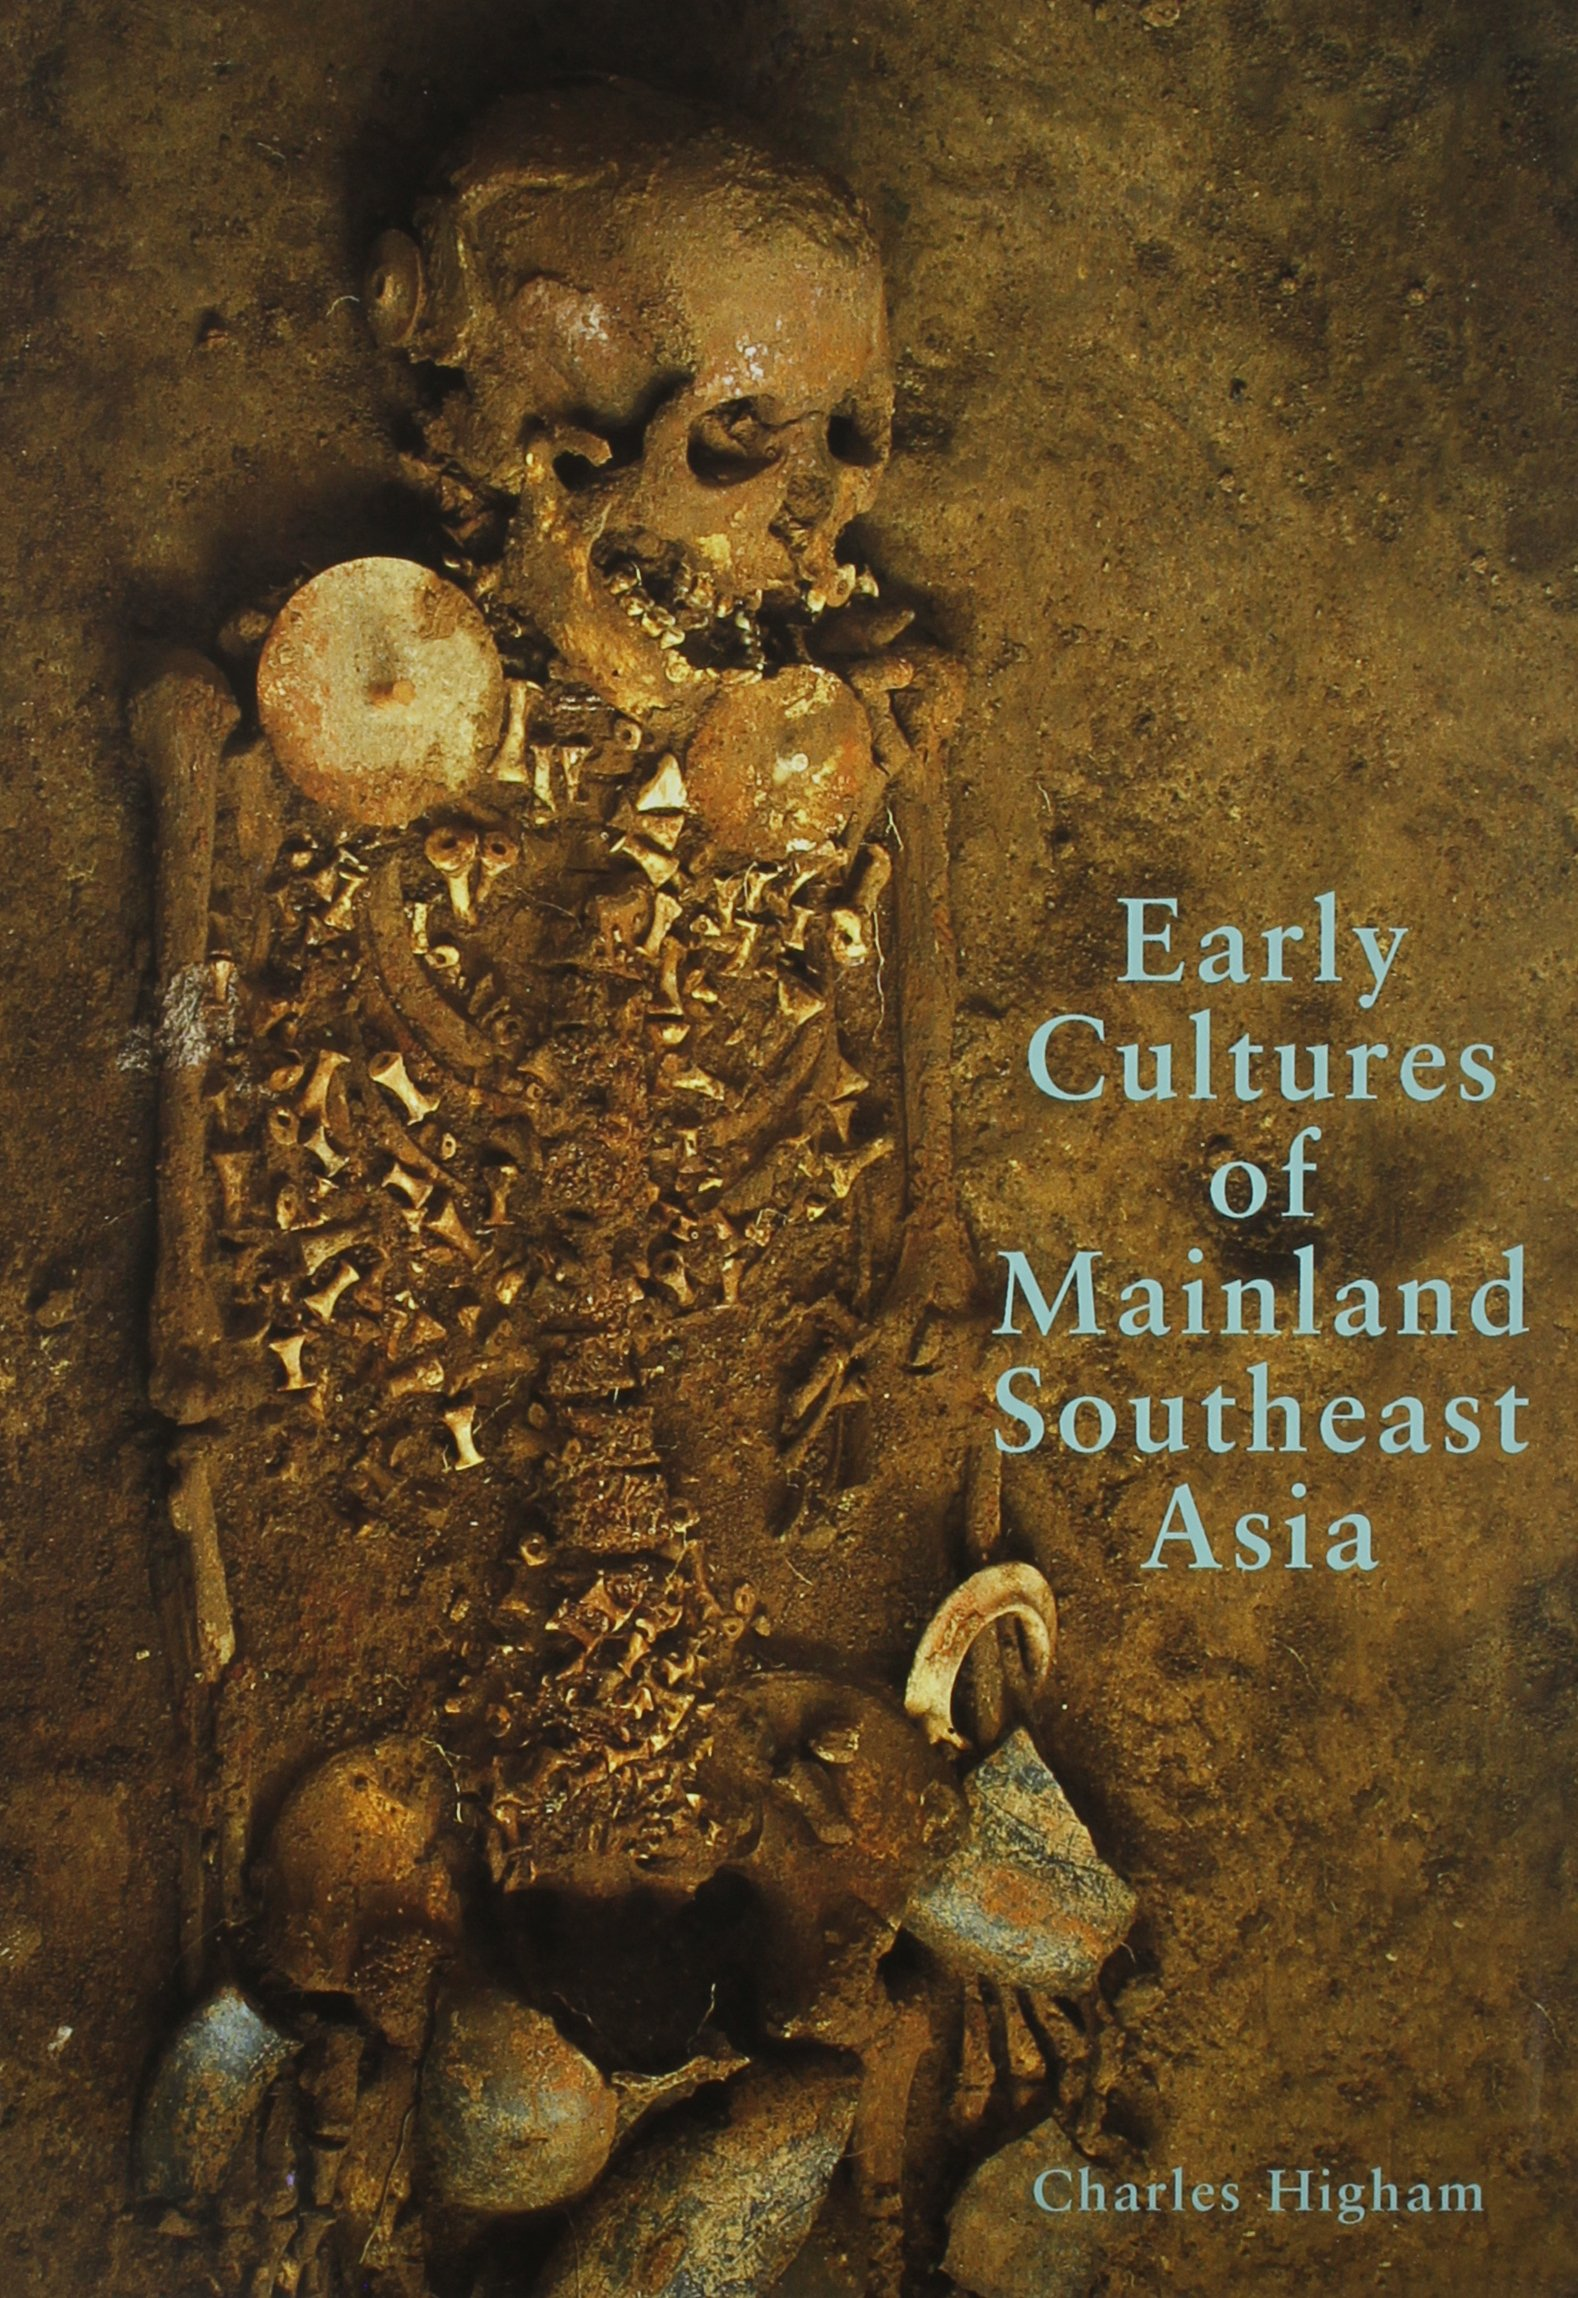 Early Cultures of Mainland Southeast Asia: Charles Higham: 9781588860286:  Amazon.com: Books